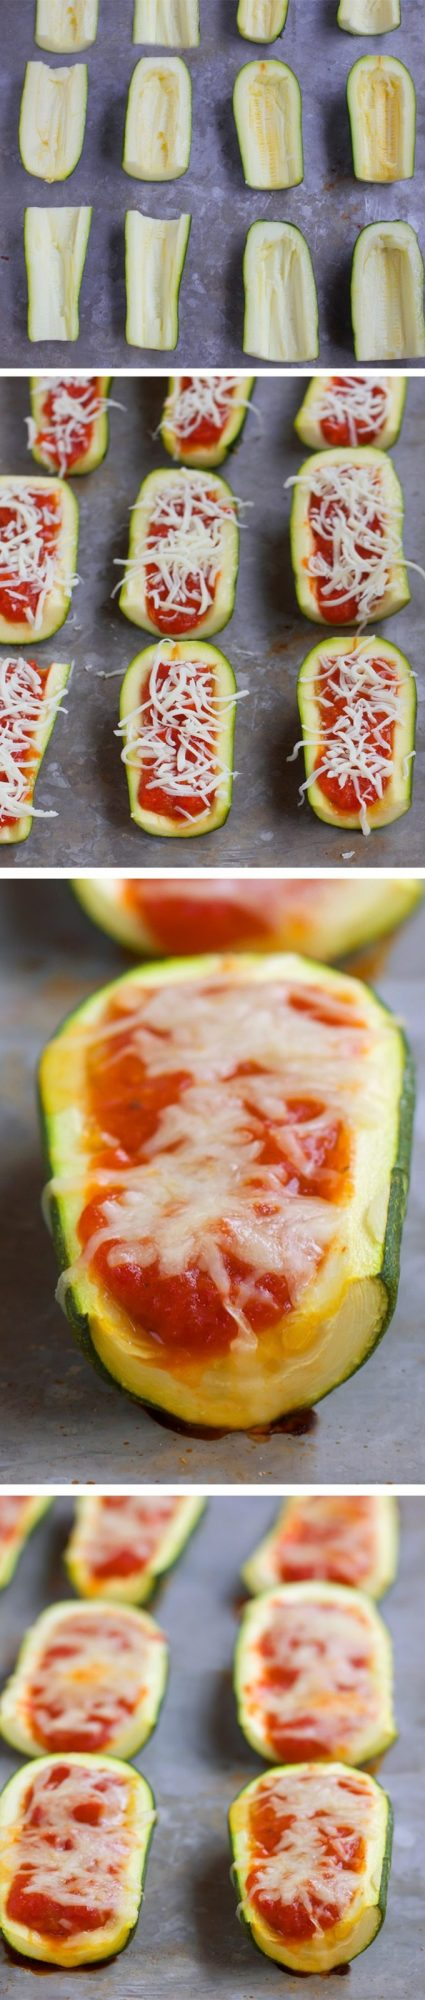 Zucchini Pizza Boats - Addictively cheesy baked zucchini, easy to make & kid-friendly. Full recipe: http://chocolatecoveredkatie.com/2016/07/21/zucchini-pizza-boats-healthy-snack/ @choccoveredkt